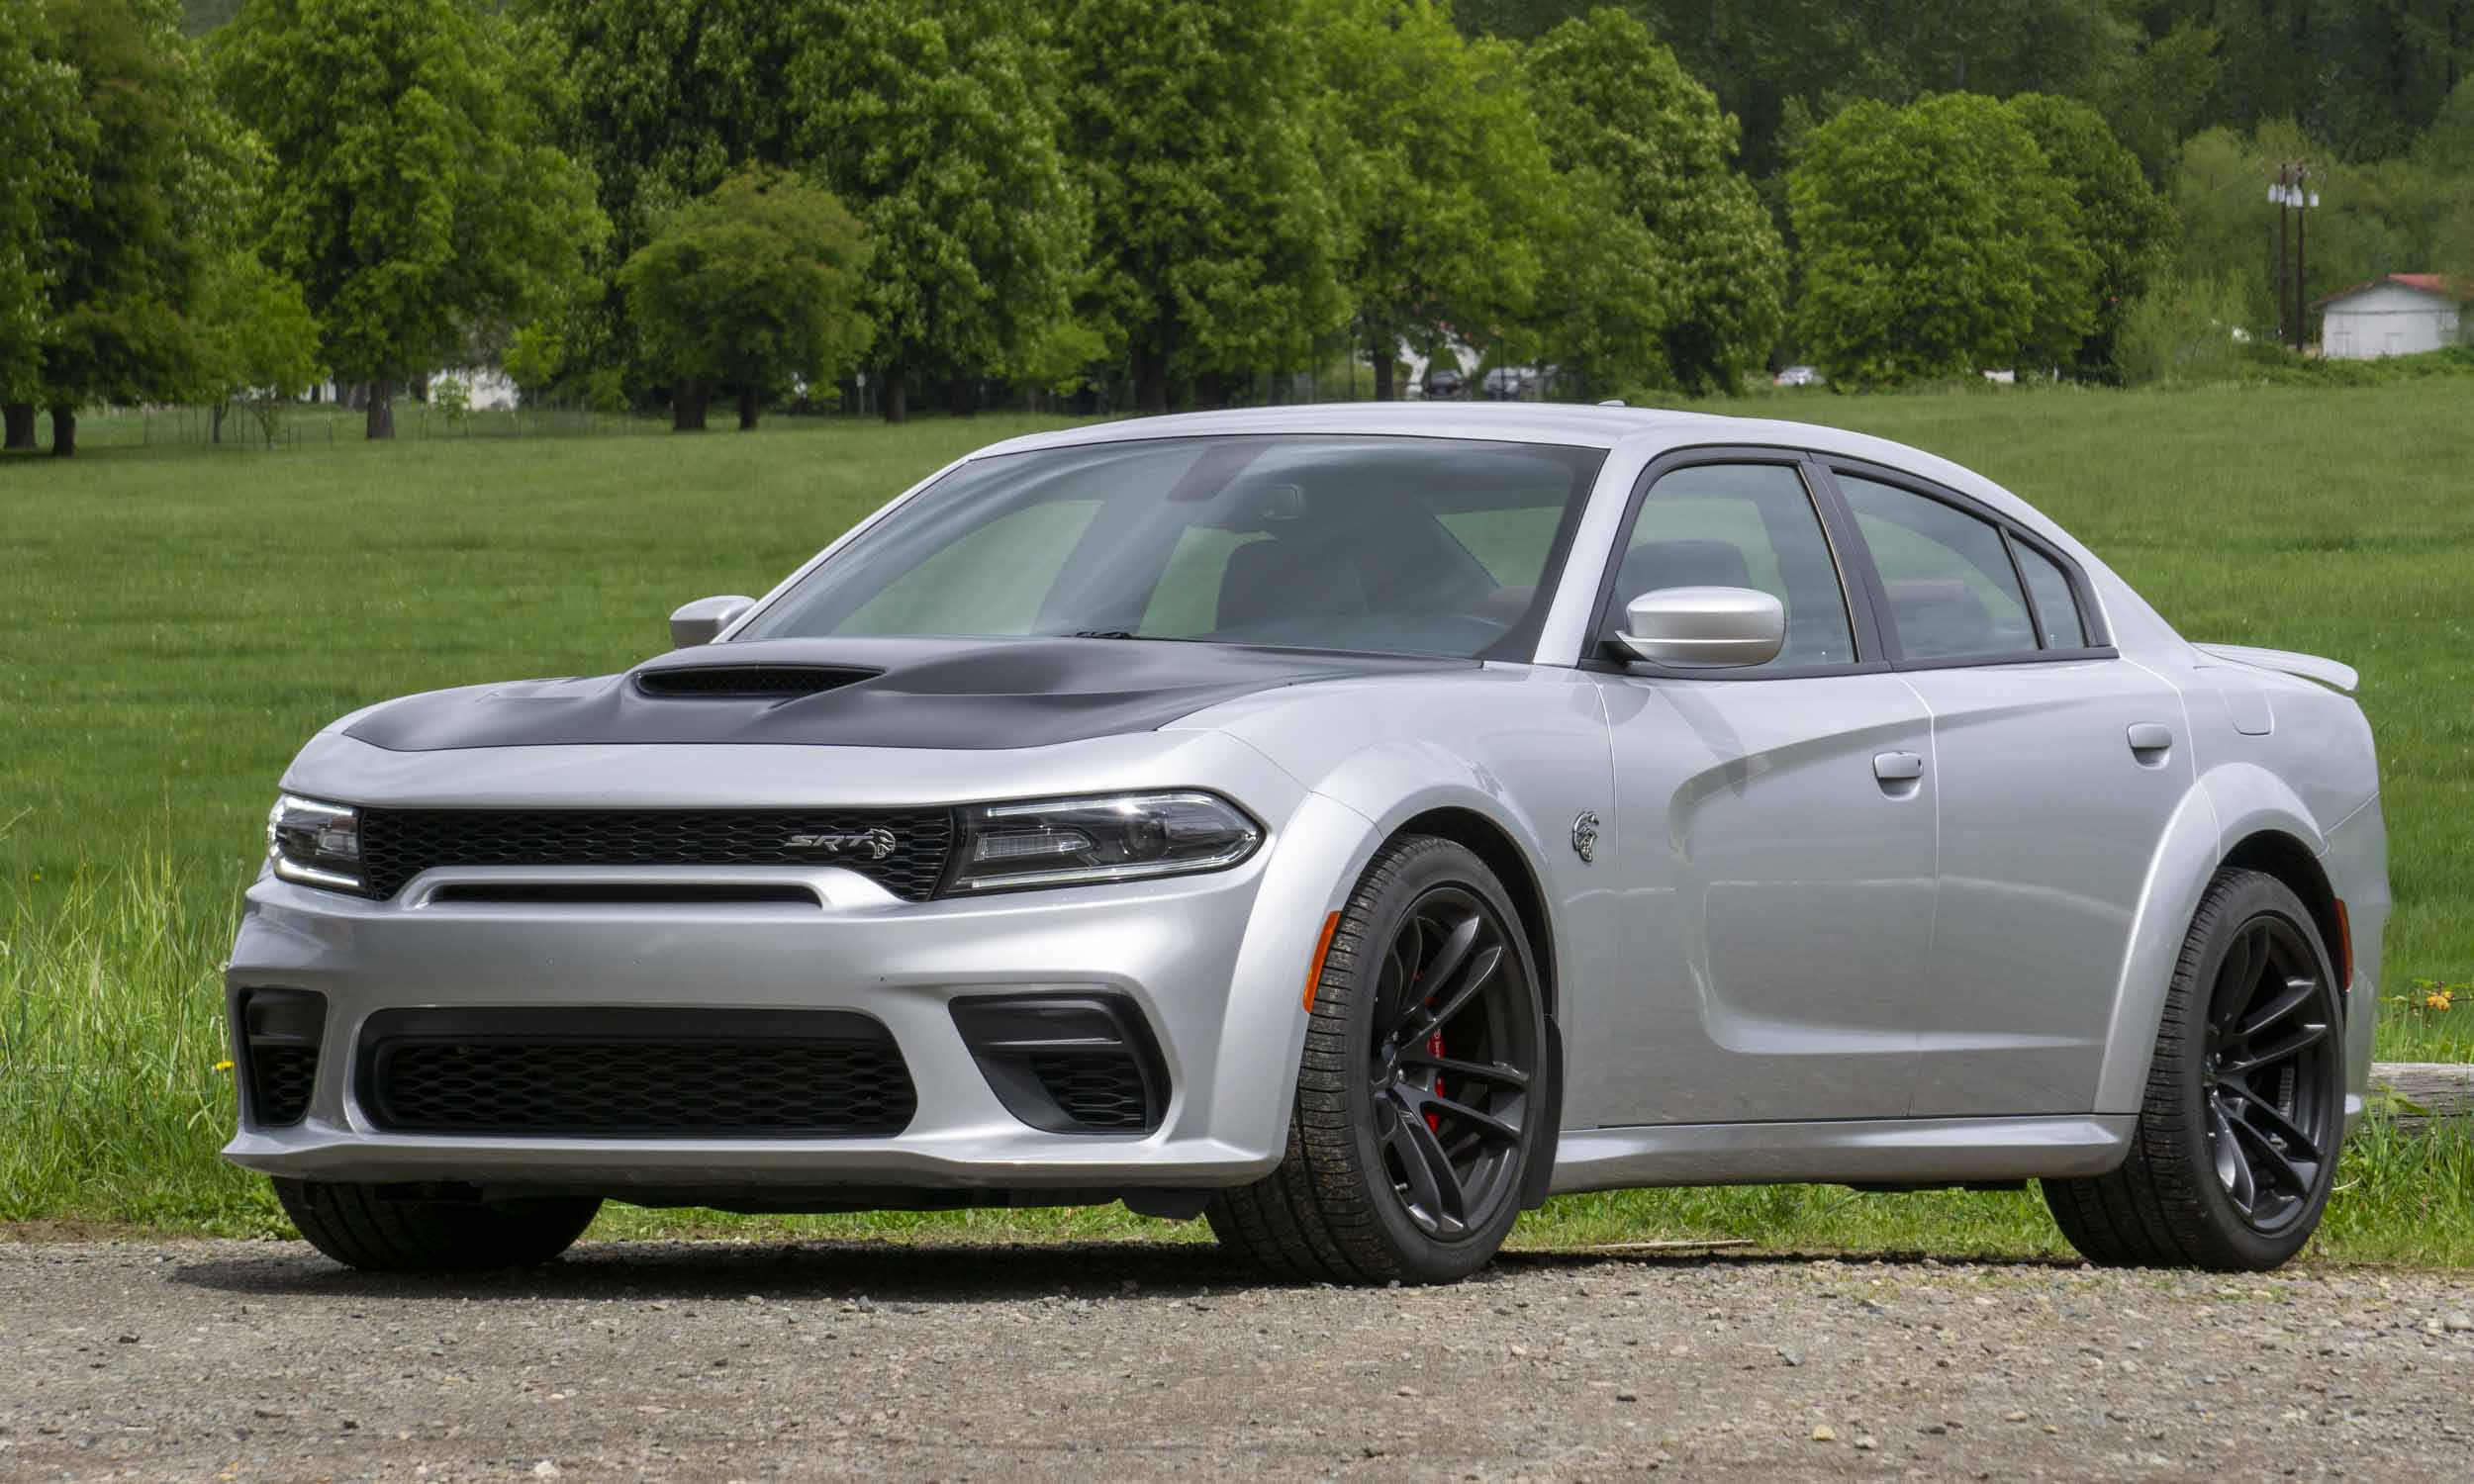 2020 dodge charger srt hellcat widebody: review - » autonxt